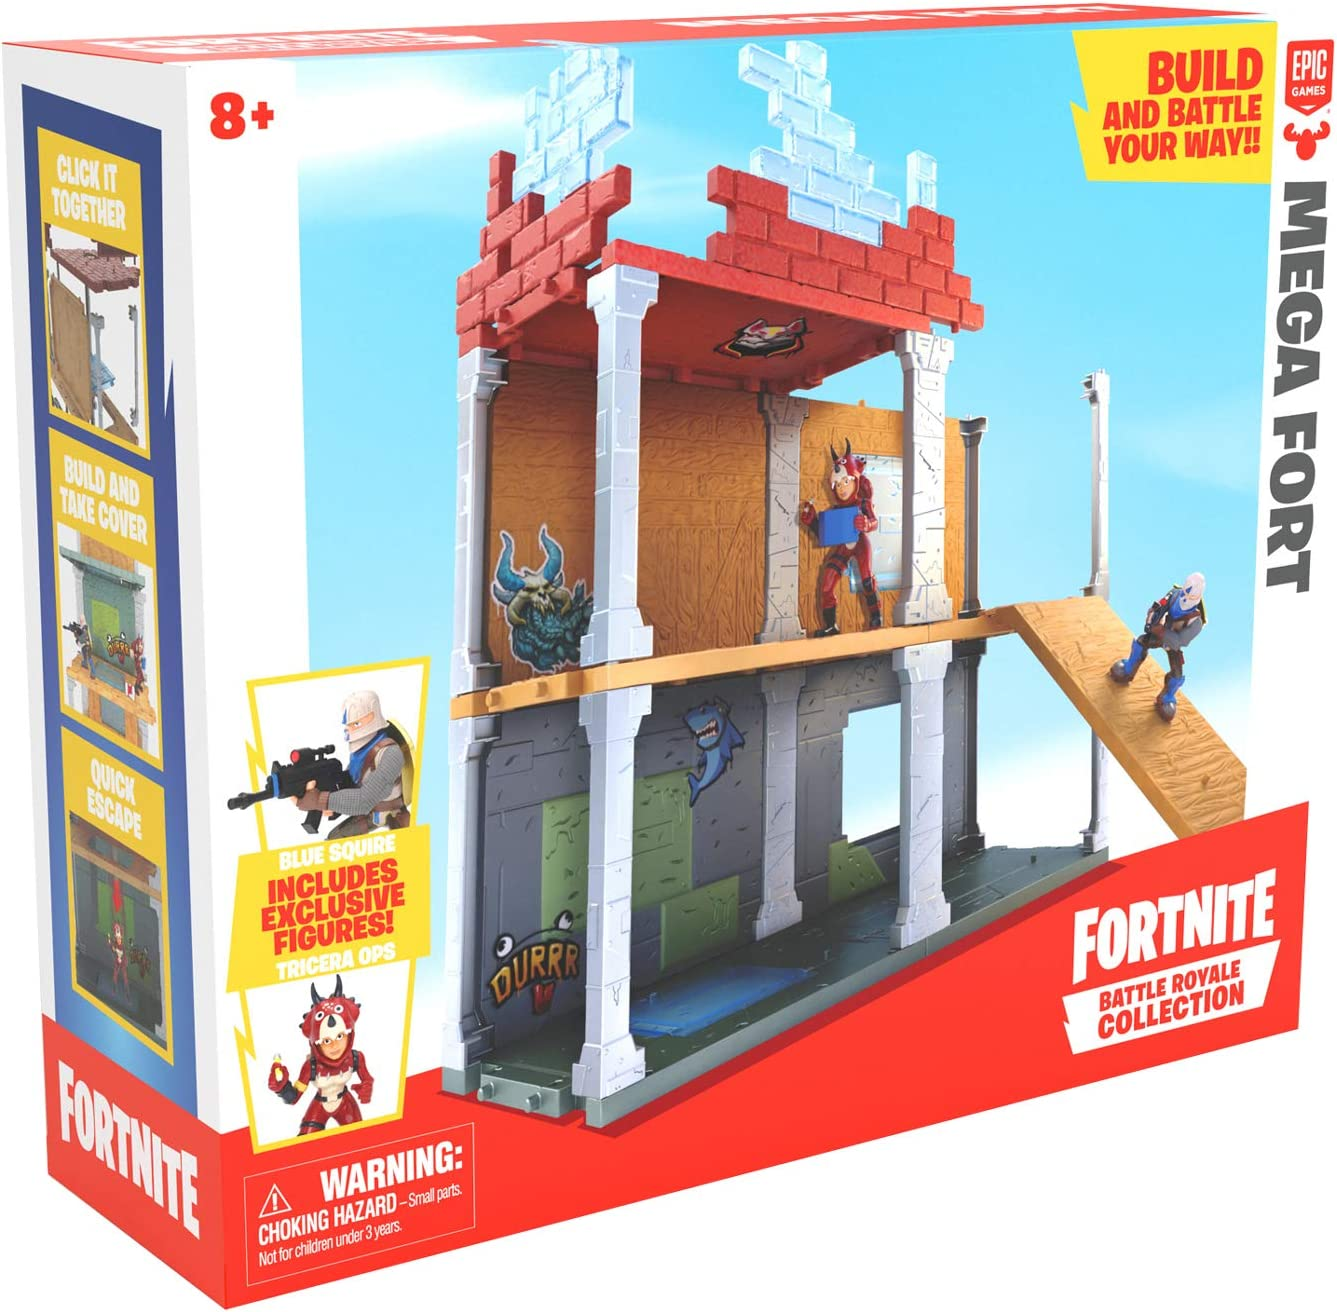 Fortnite 63511 Battle Royale Collection Mega Fort y 2 figuras exclusivas de Tricera Ops y Blue Squire, multicolor , color/modelo surtido: Amazon.es: Juguetes y juegos